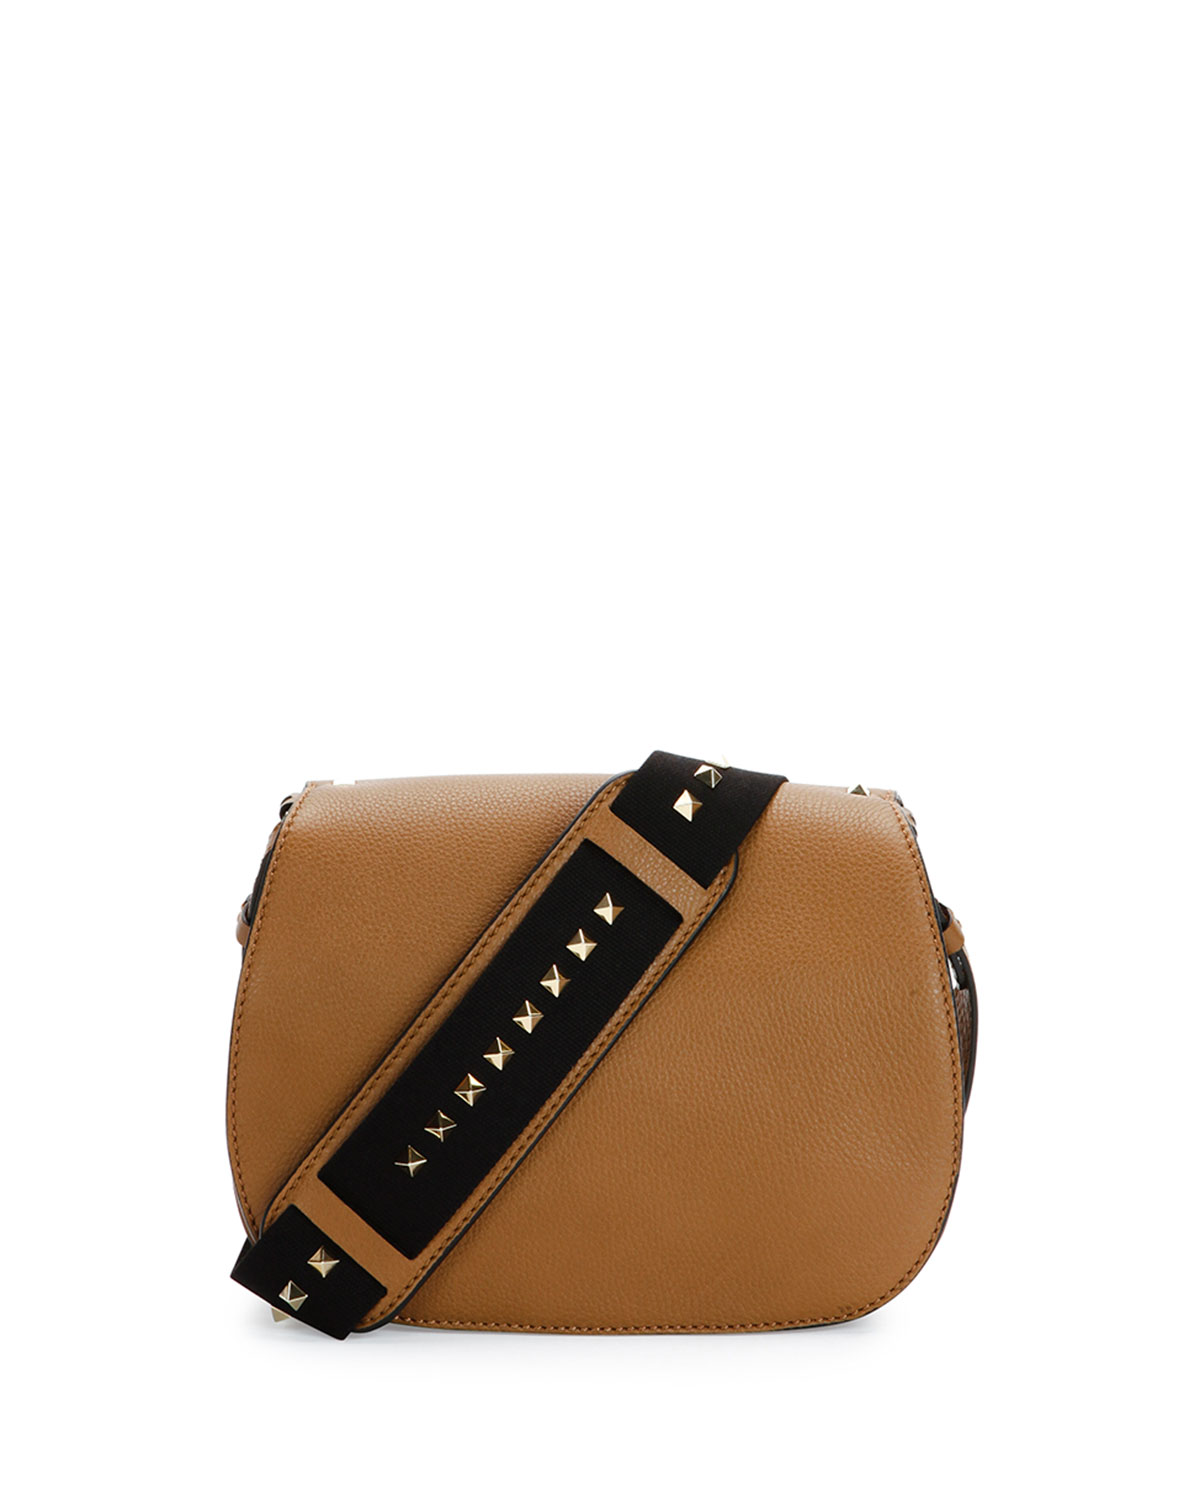 Red Valentino Band Rockstud Round Messenger Bag, Camel